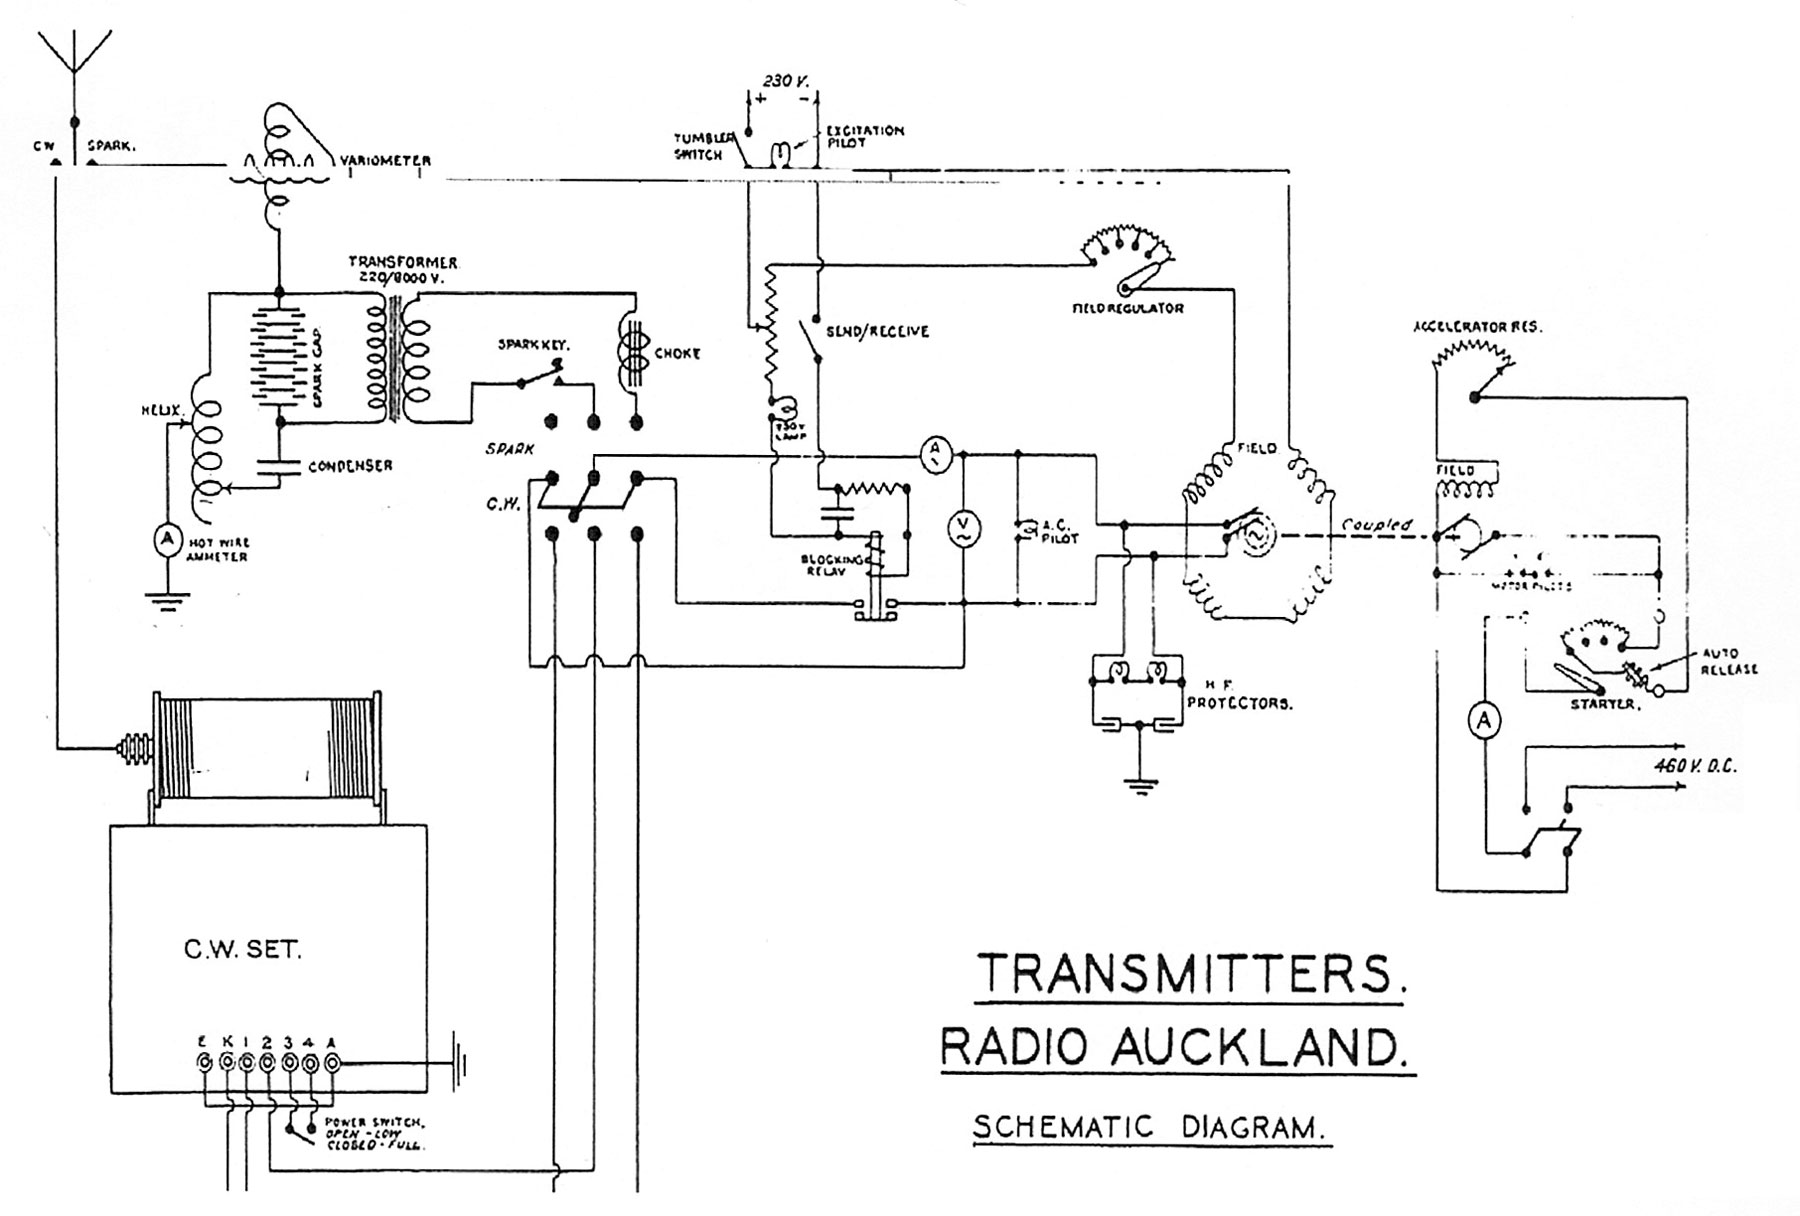 System for switching between spark and CW transmitters at Auckland Radio